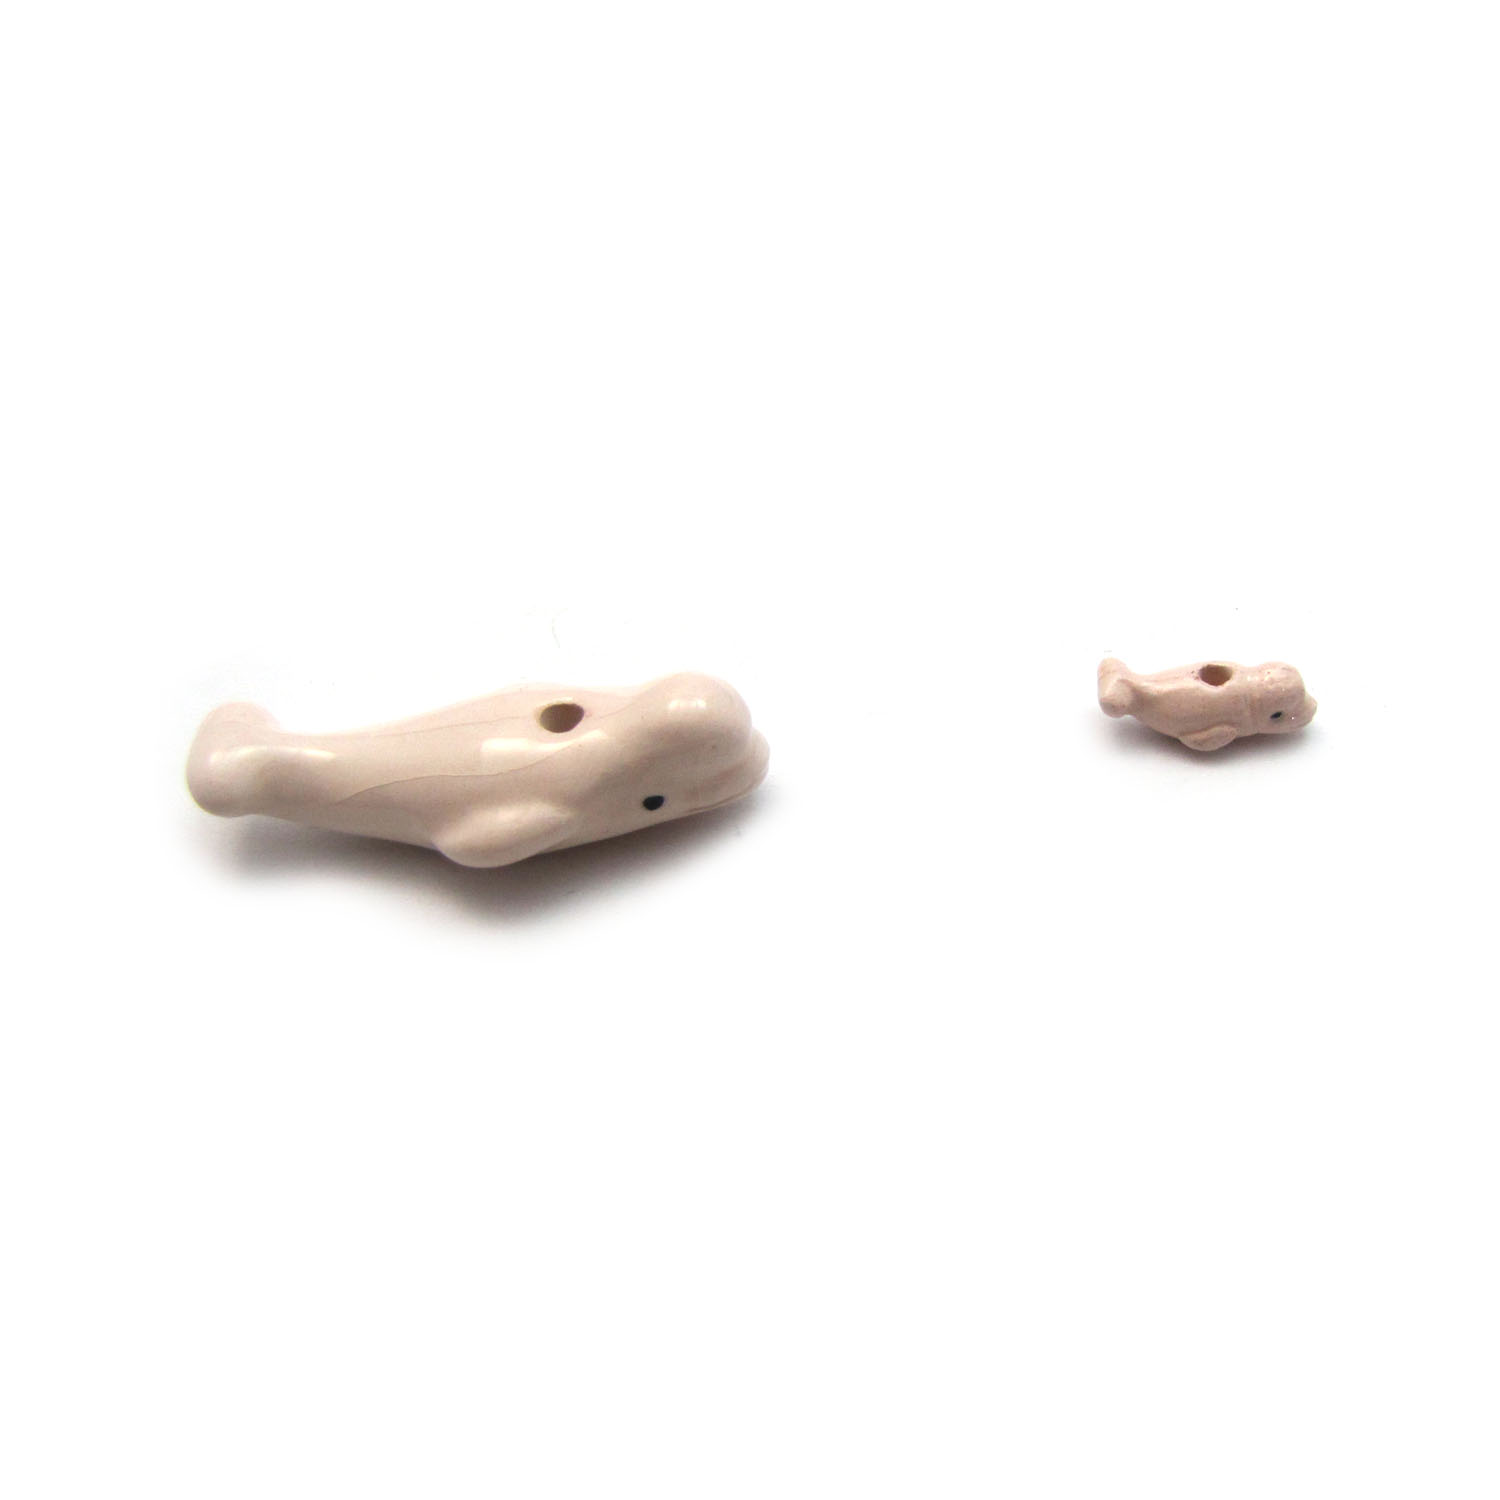 ceramic beads large and small beluga side on view